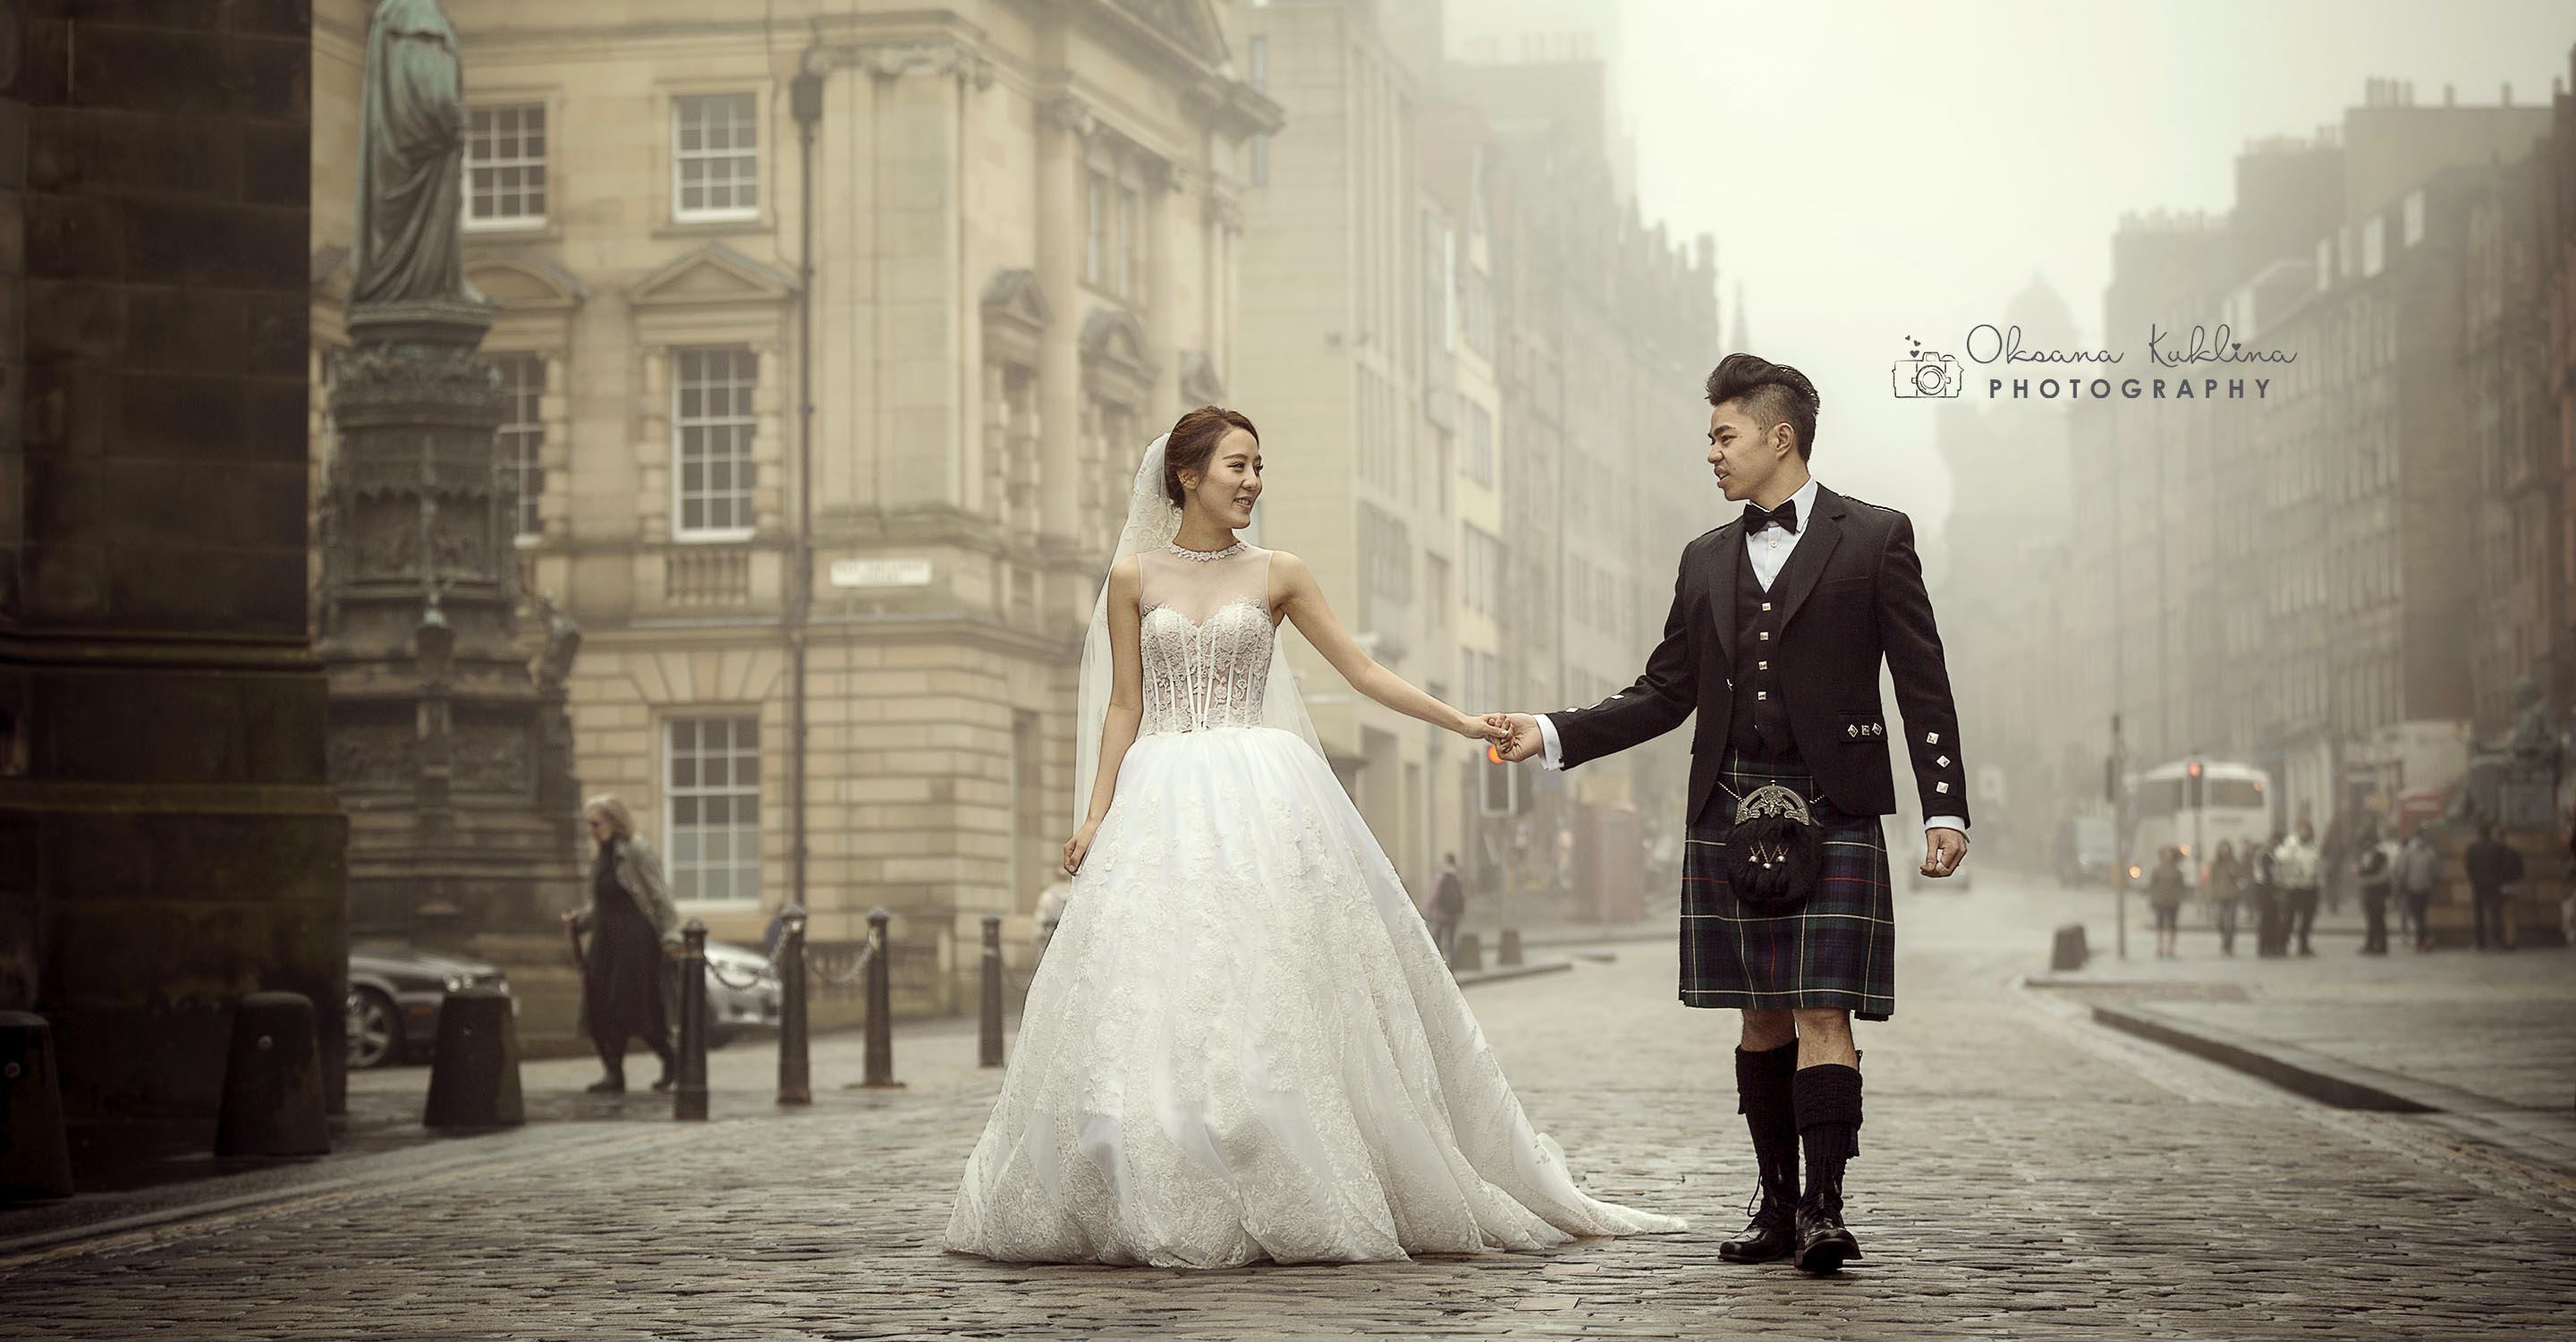 Best Edinburgh Wedding Photographer - Scotland Wedding Photography - Edinburgh Wedding Photo - Royal Mile Wedding - Couple Photo - Bride and Groom picture